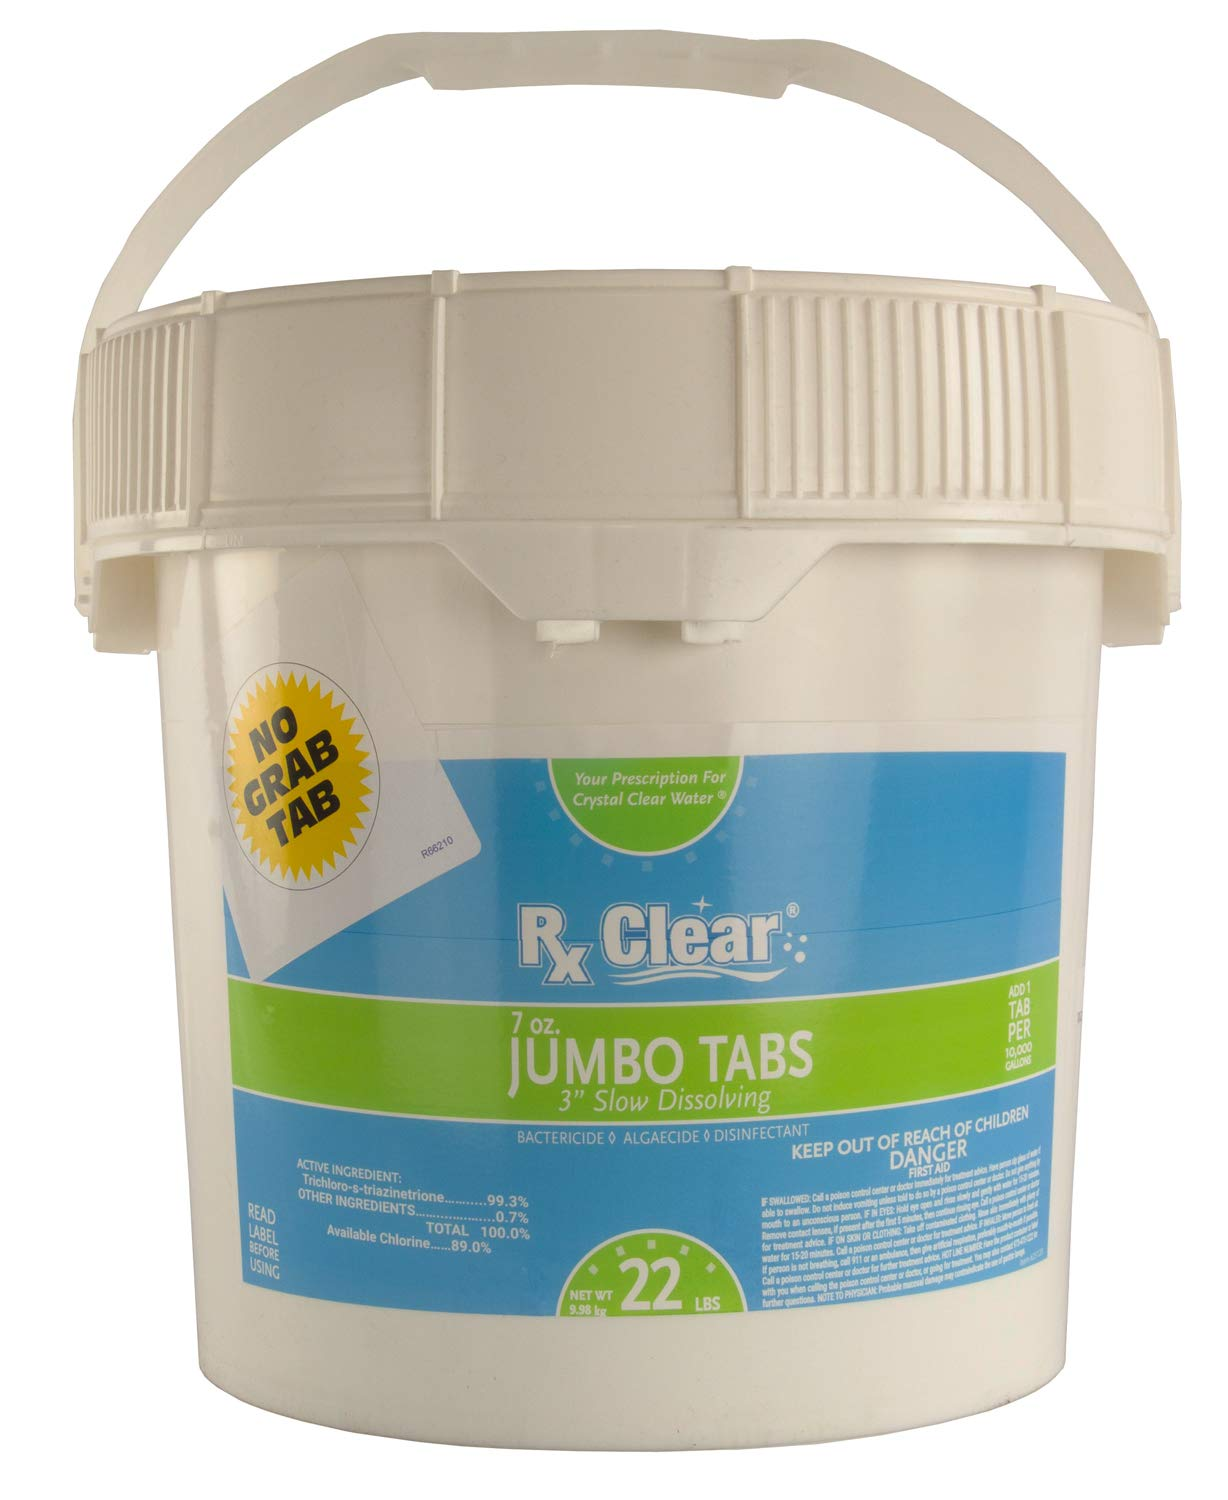 Rx Clear 3-Inch Water Soluble Chlorine Tabs   22 Pound Bucket   Use As Bactericide, Algaecide Disinfectant in Swimming Pools Spas   No Need to Take Out of Wrapper by Rx Clear